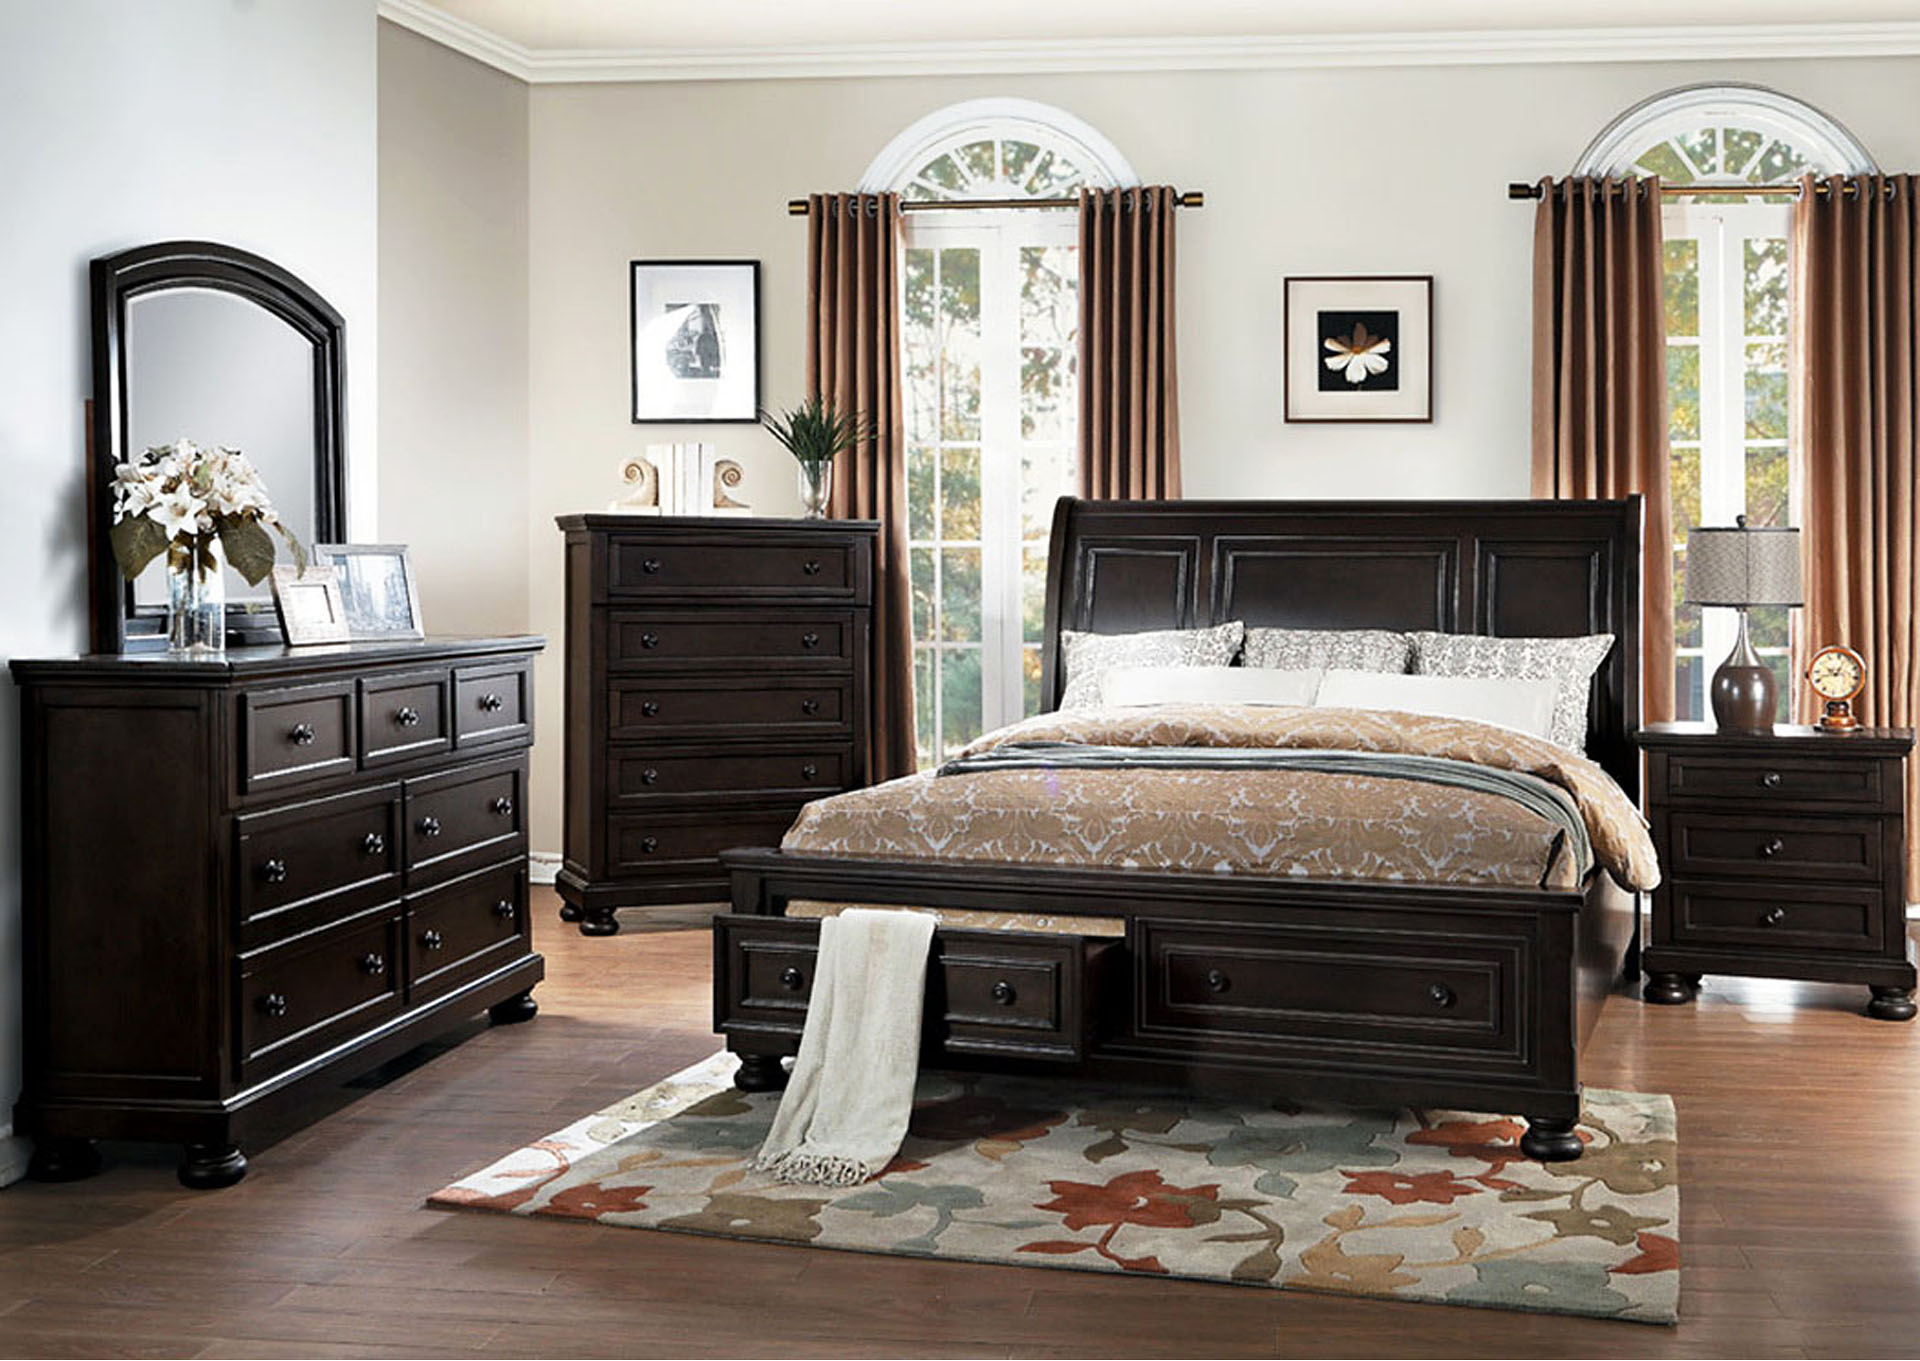 Queen Platform Bed w/Footboard Storage,Homelegance